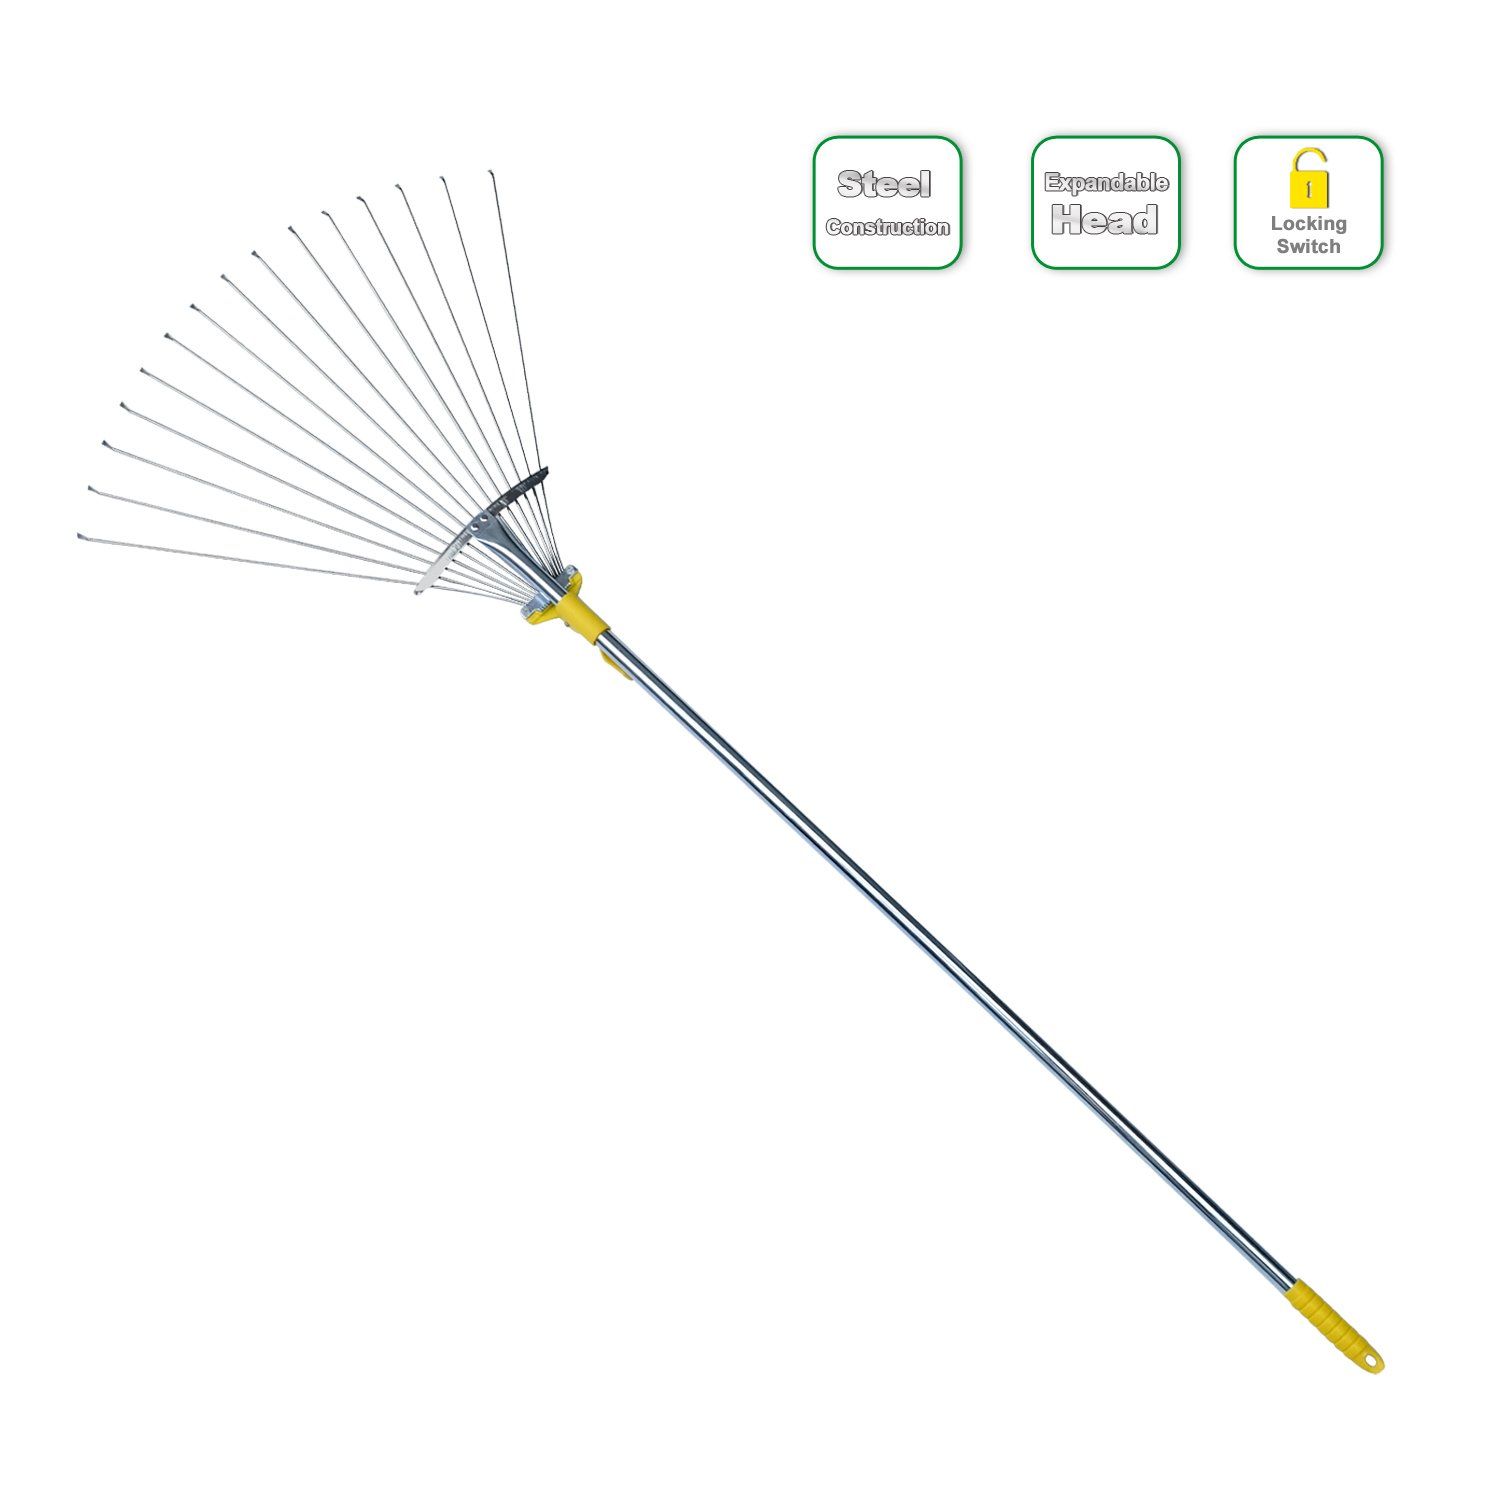 Jardineer 60 inches Adjustable Garden Leaf Rake, Expandable Rake for Lawn,Adjustable Head from 7-1/2 inches to 19 inches, Yard Rake for Leaves Leaf Collecting-Garden Gifts for Women & Men